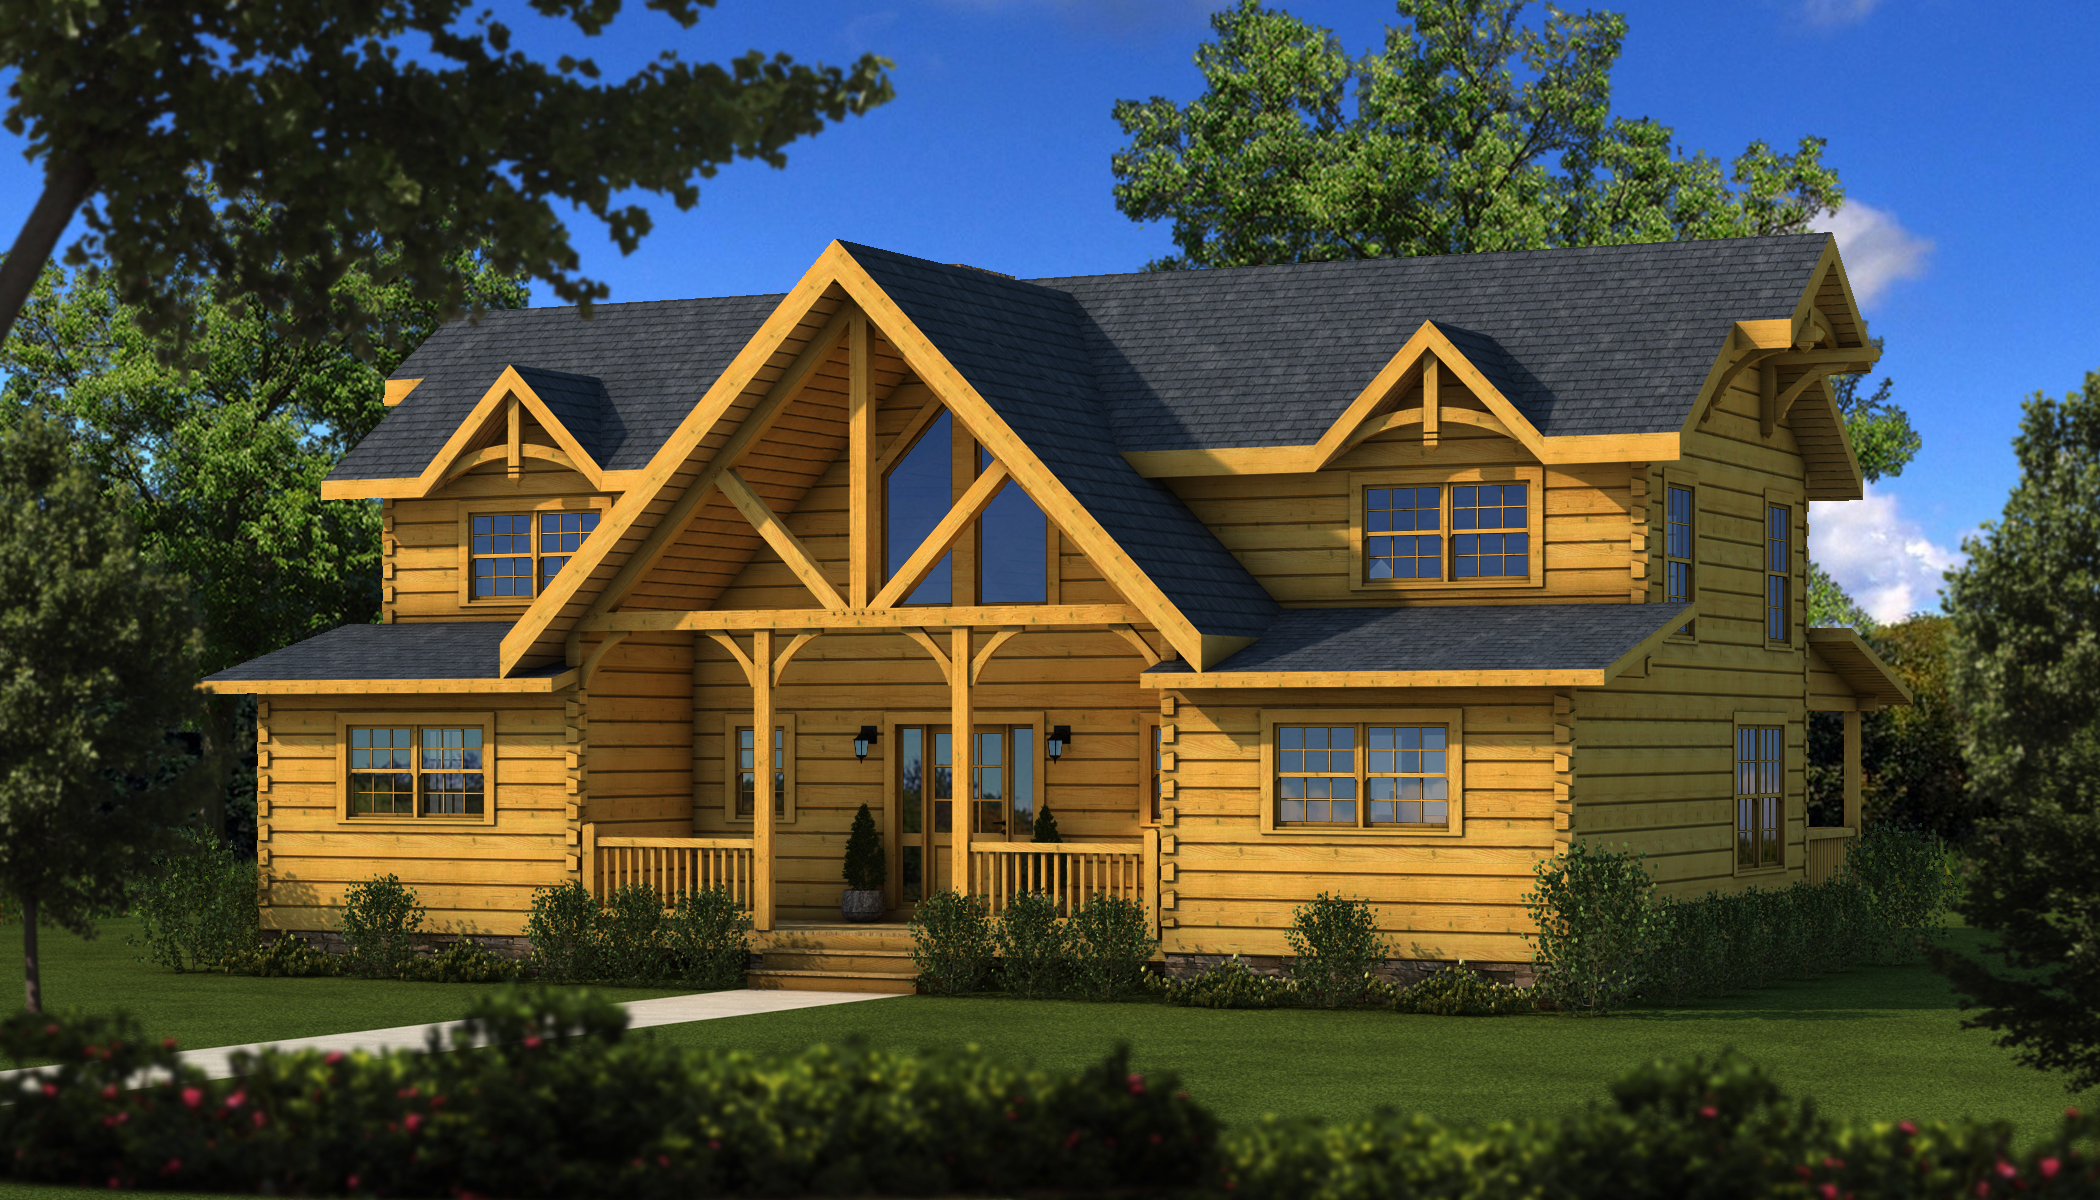 River rock tf plans information southland log homes for River rock house plans